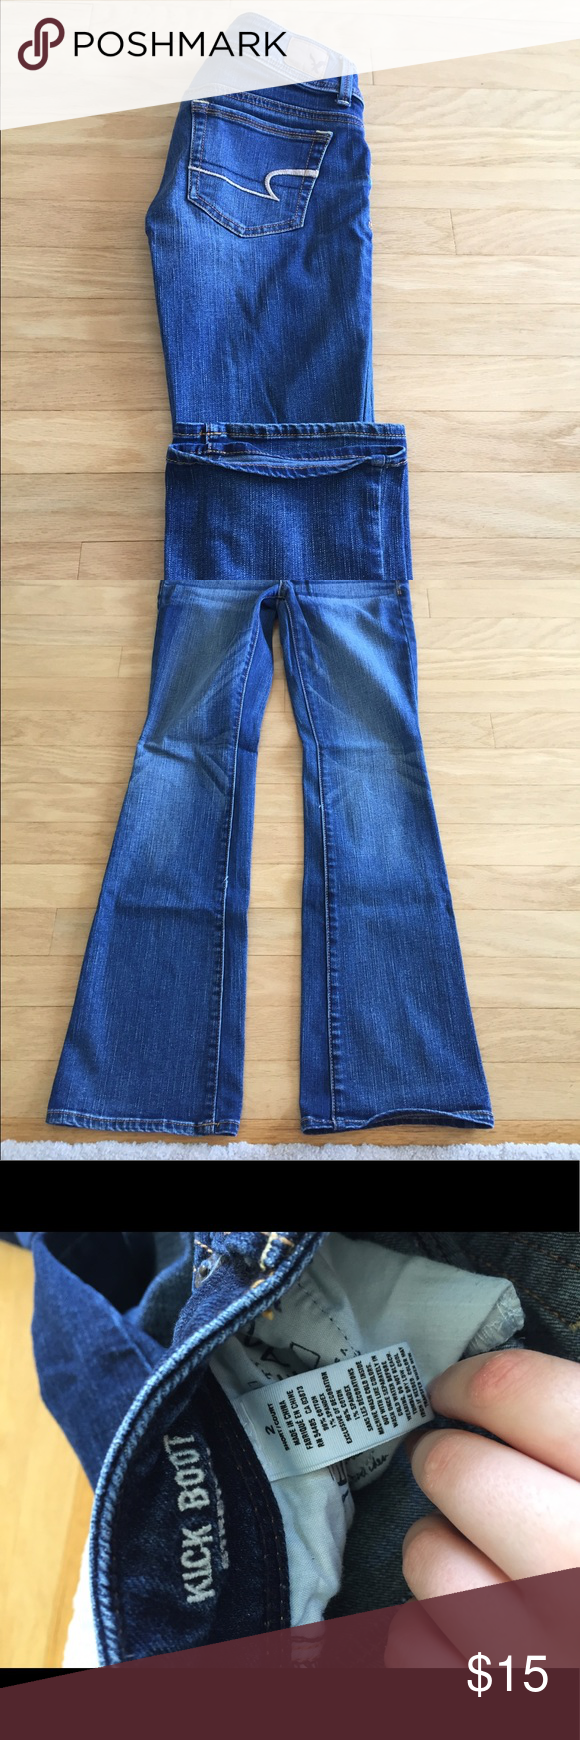 American Eagle Jeans American Eagle kickboot Jeans, size 2 stretchy, only worn a few times American Eagle Outfitters Pants Boot Cut & Flare